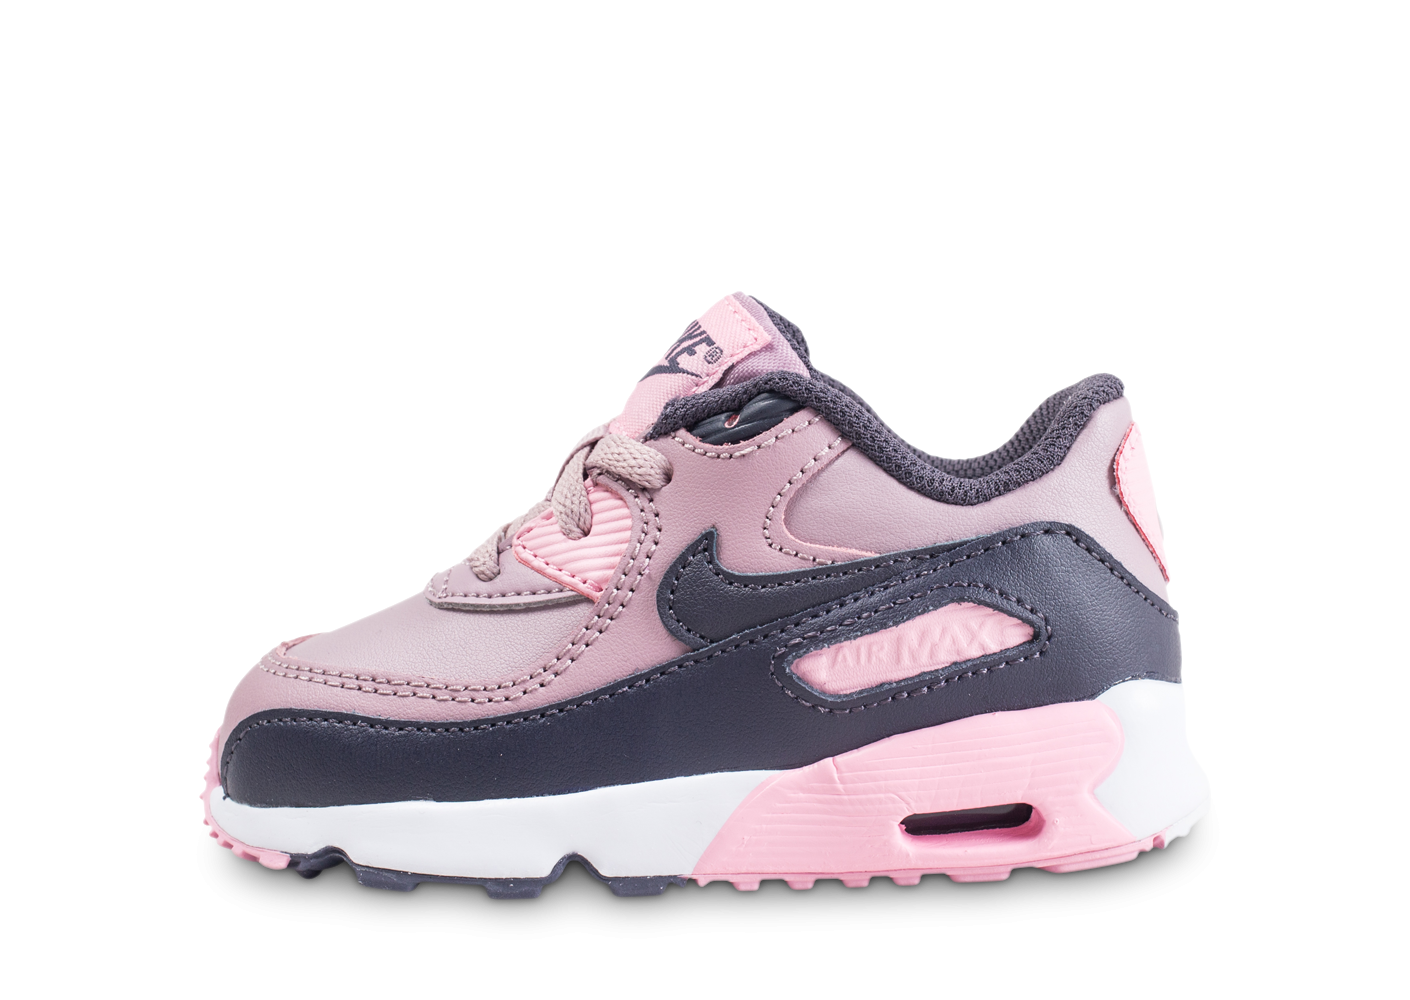 new styles 8b4bf 5968e Nike Air Max 90 Leather rose bébé - Chaussures Enfant - Chausport